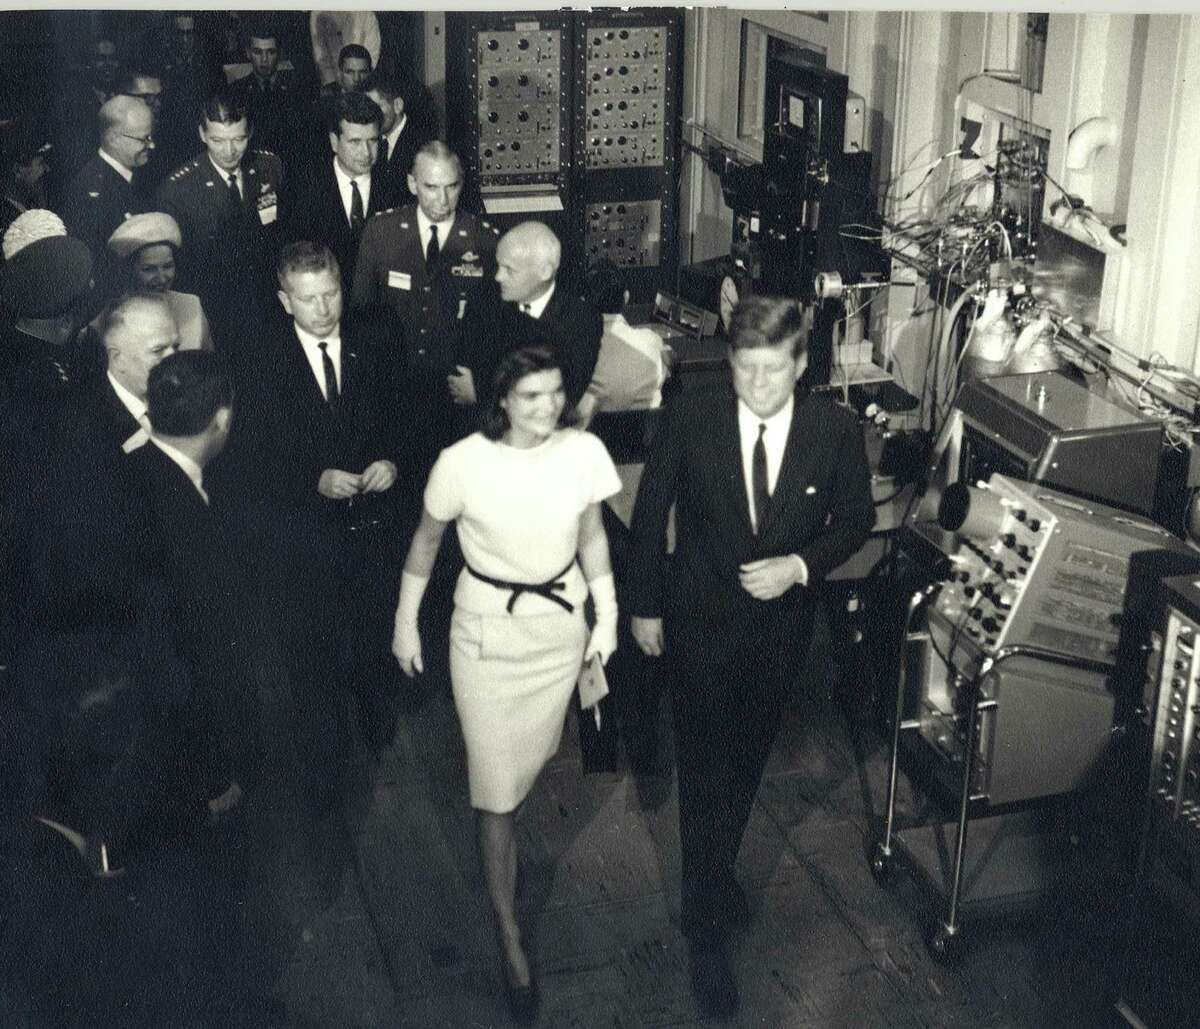 President John F. Kennedy and his wife, Jacqueline, tour the hyperbaric chamber at Brooks AFB on Nov. 21, 1963.